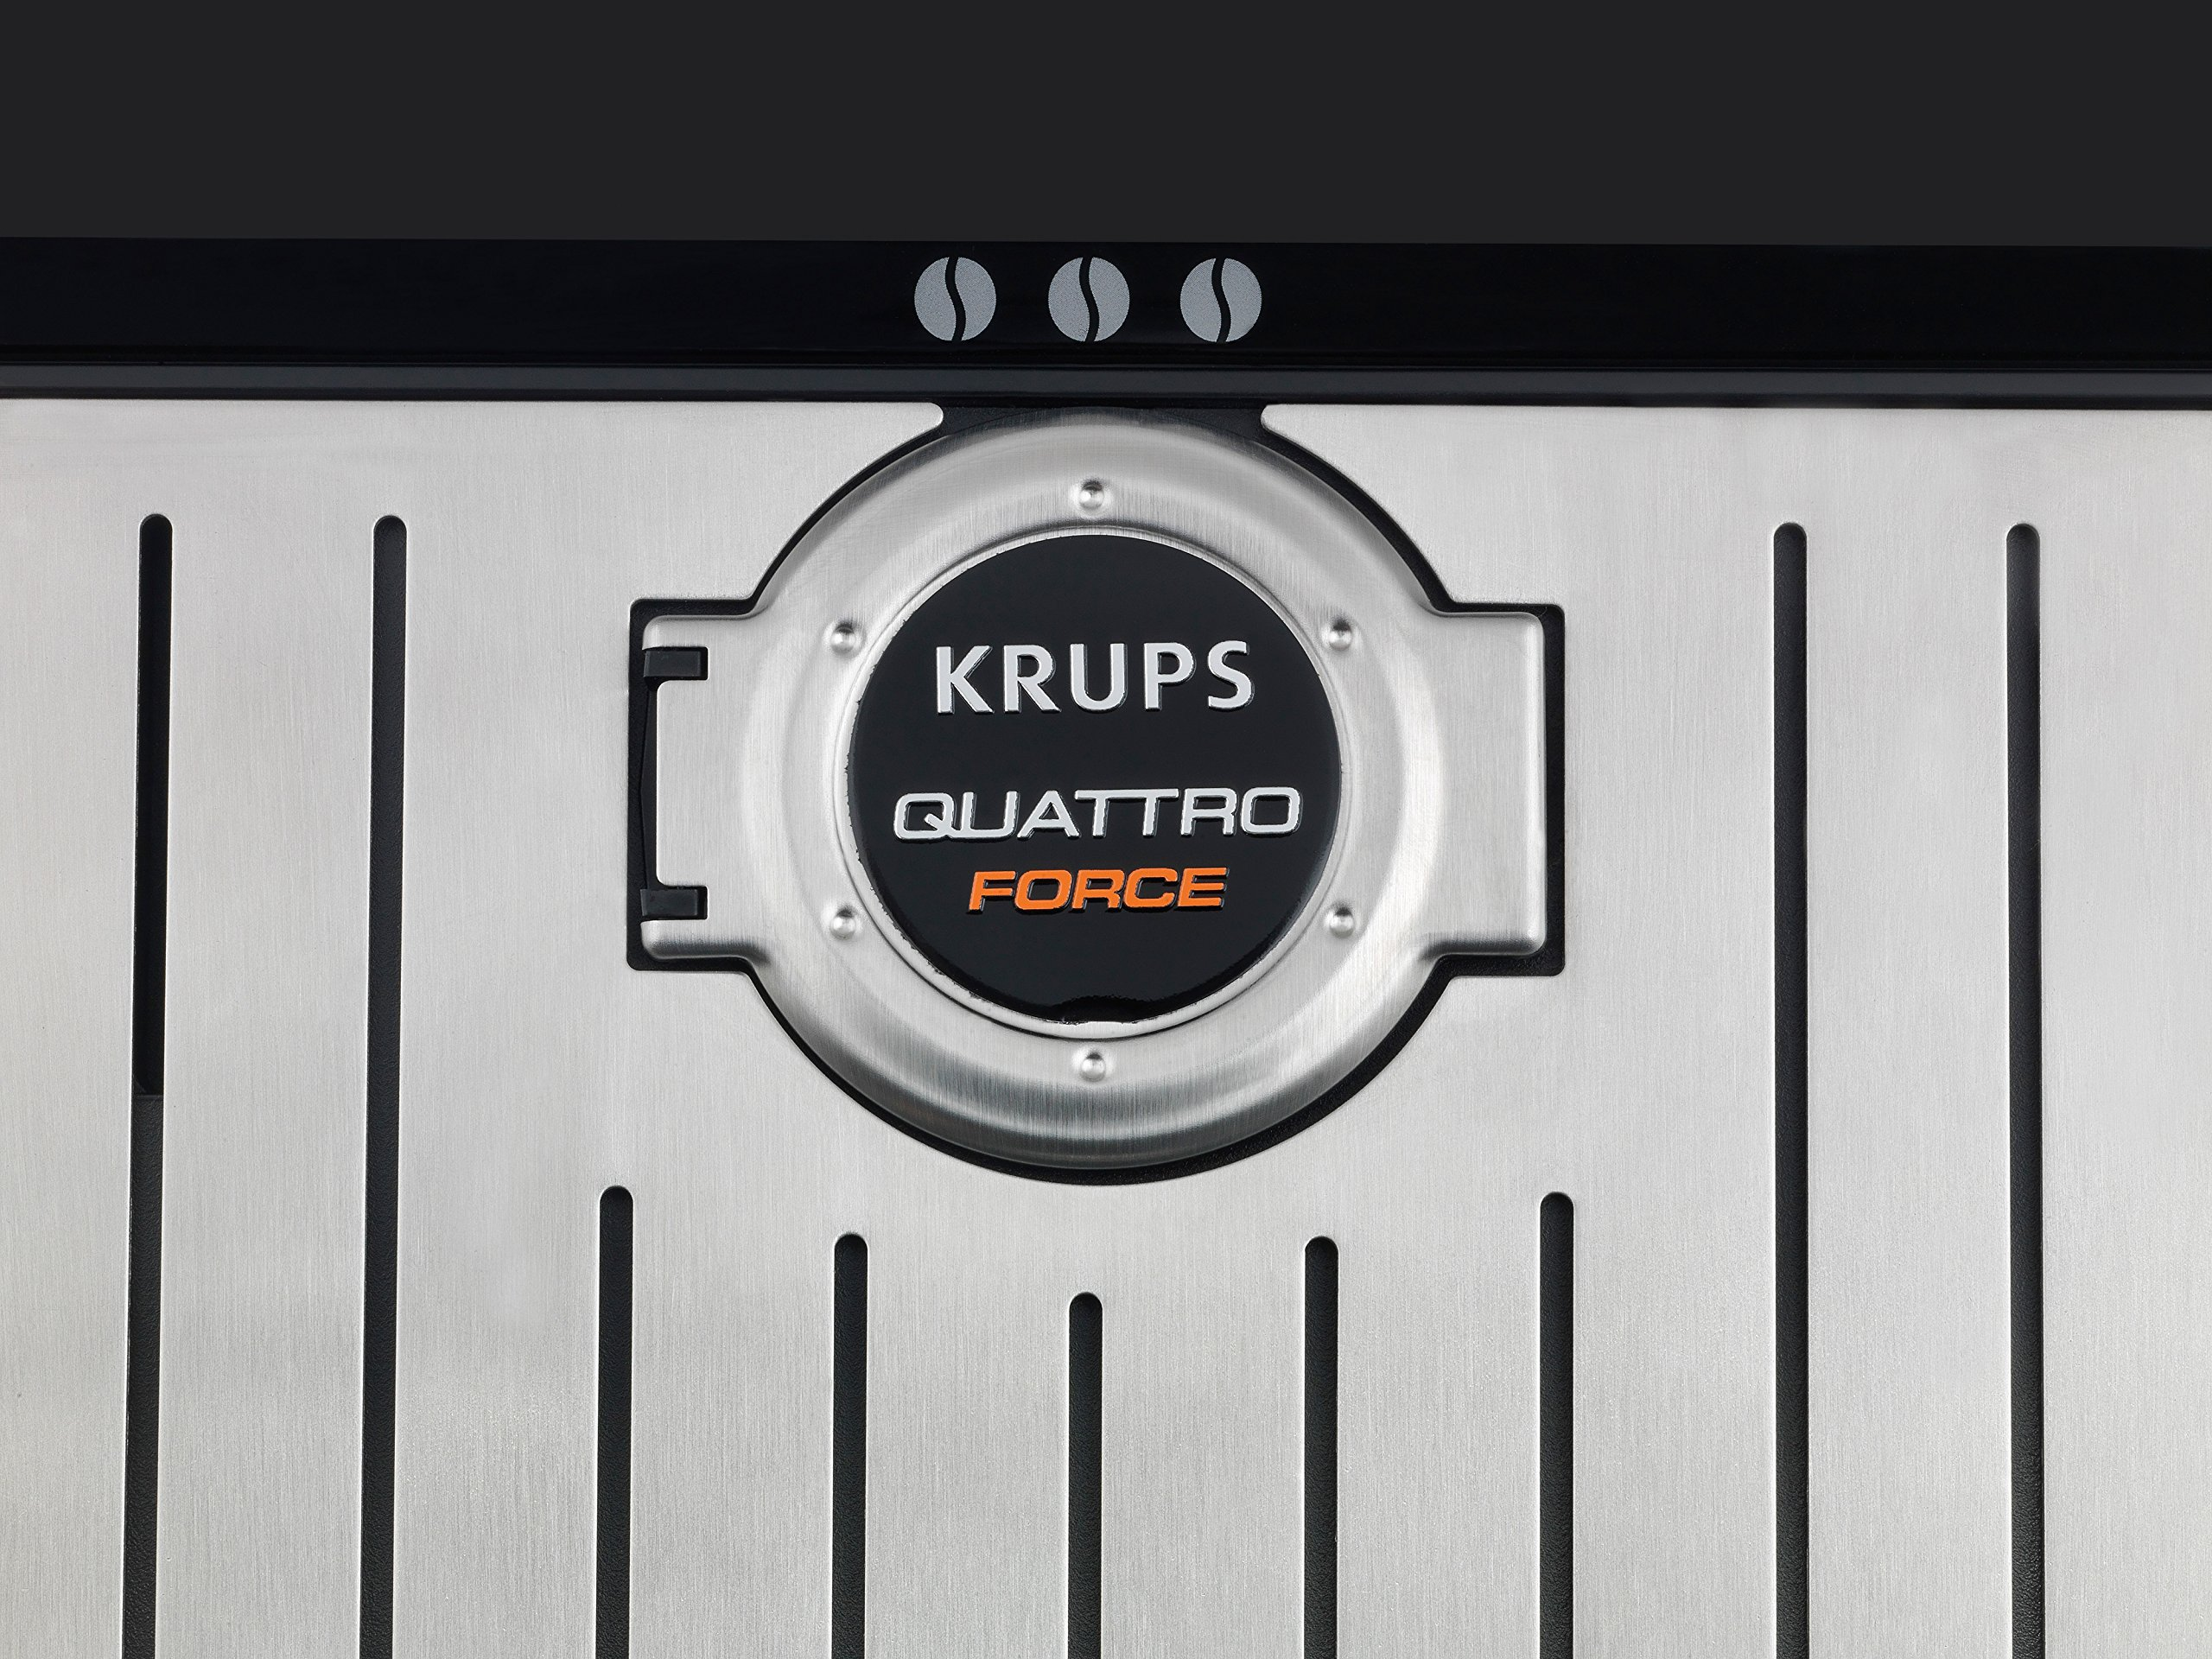 Krups-Kaffeevollautomat-Barista-New-Age-One-Touch-Cappuccino-farbiges-Touchscreen-Display-16-liters-Carbon